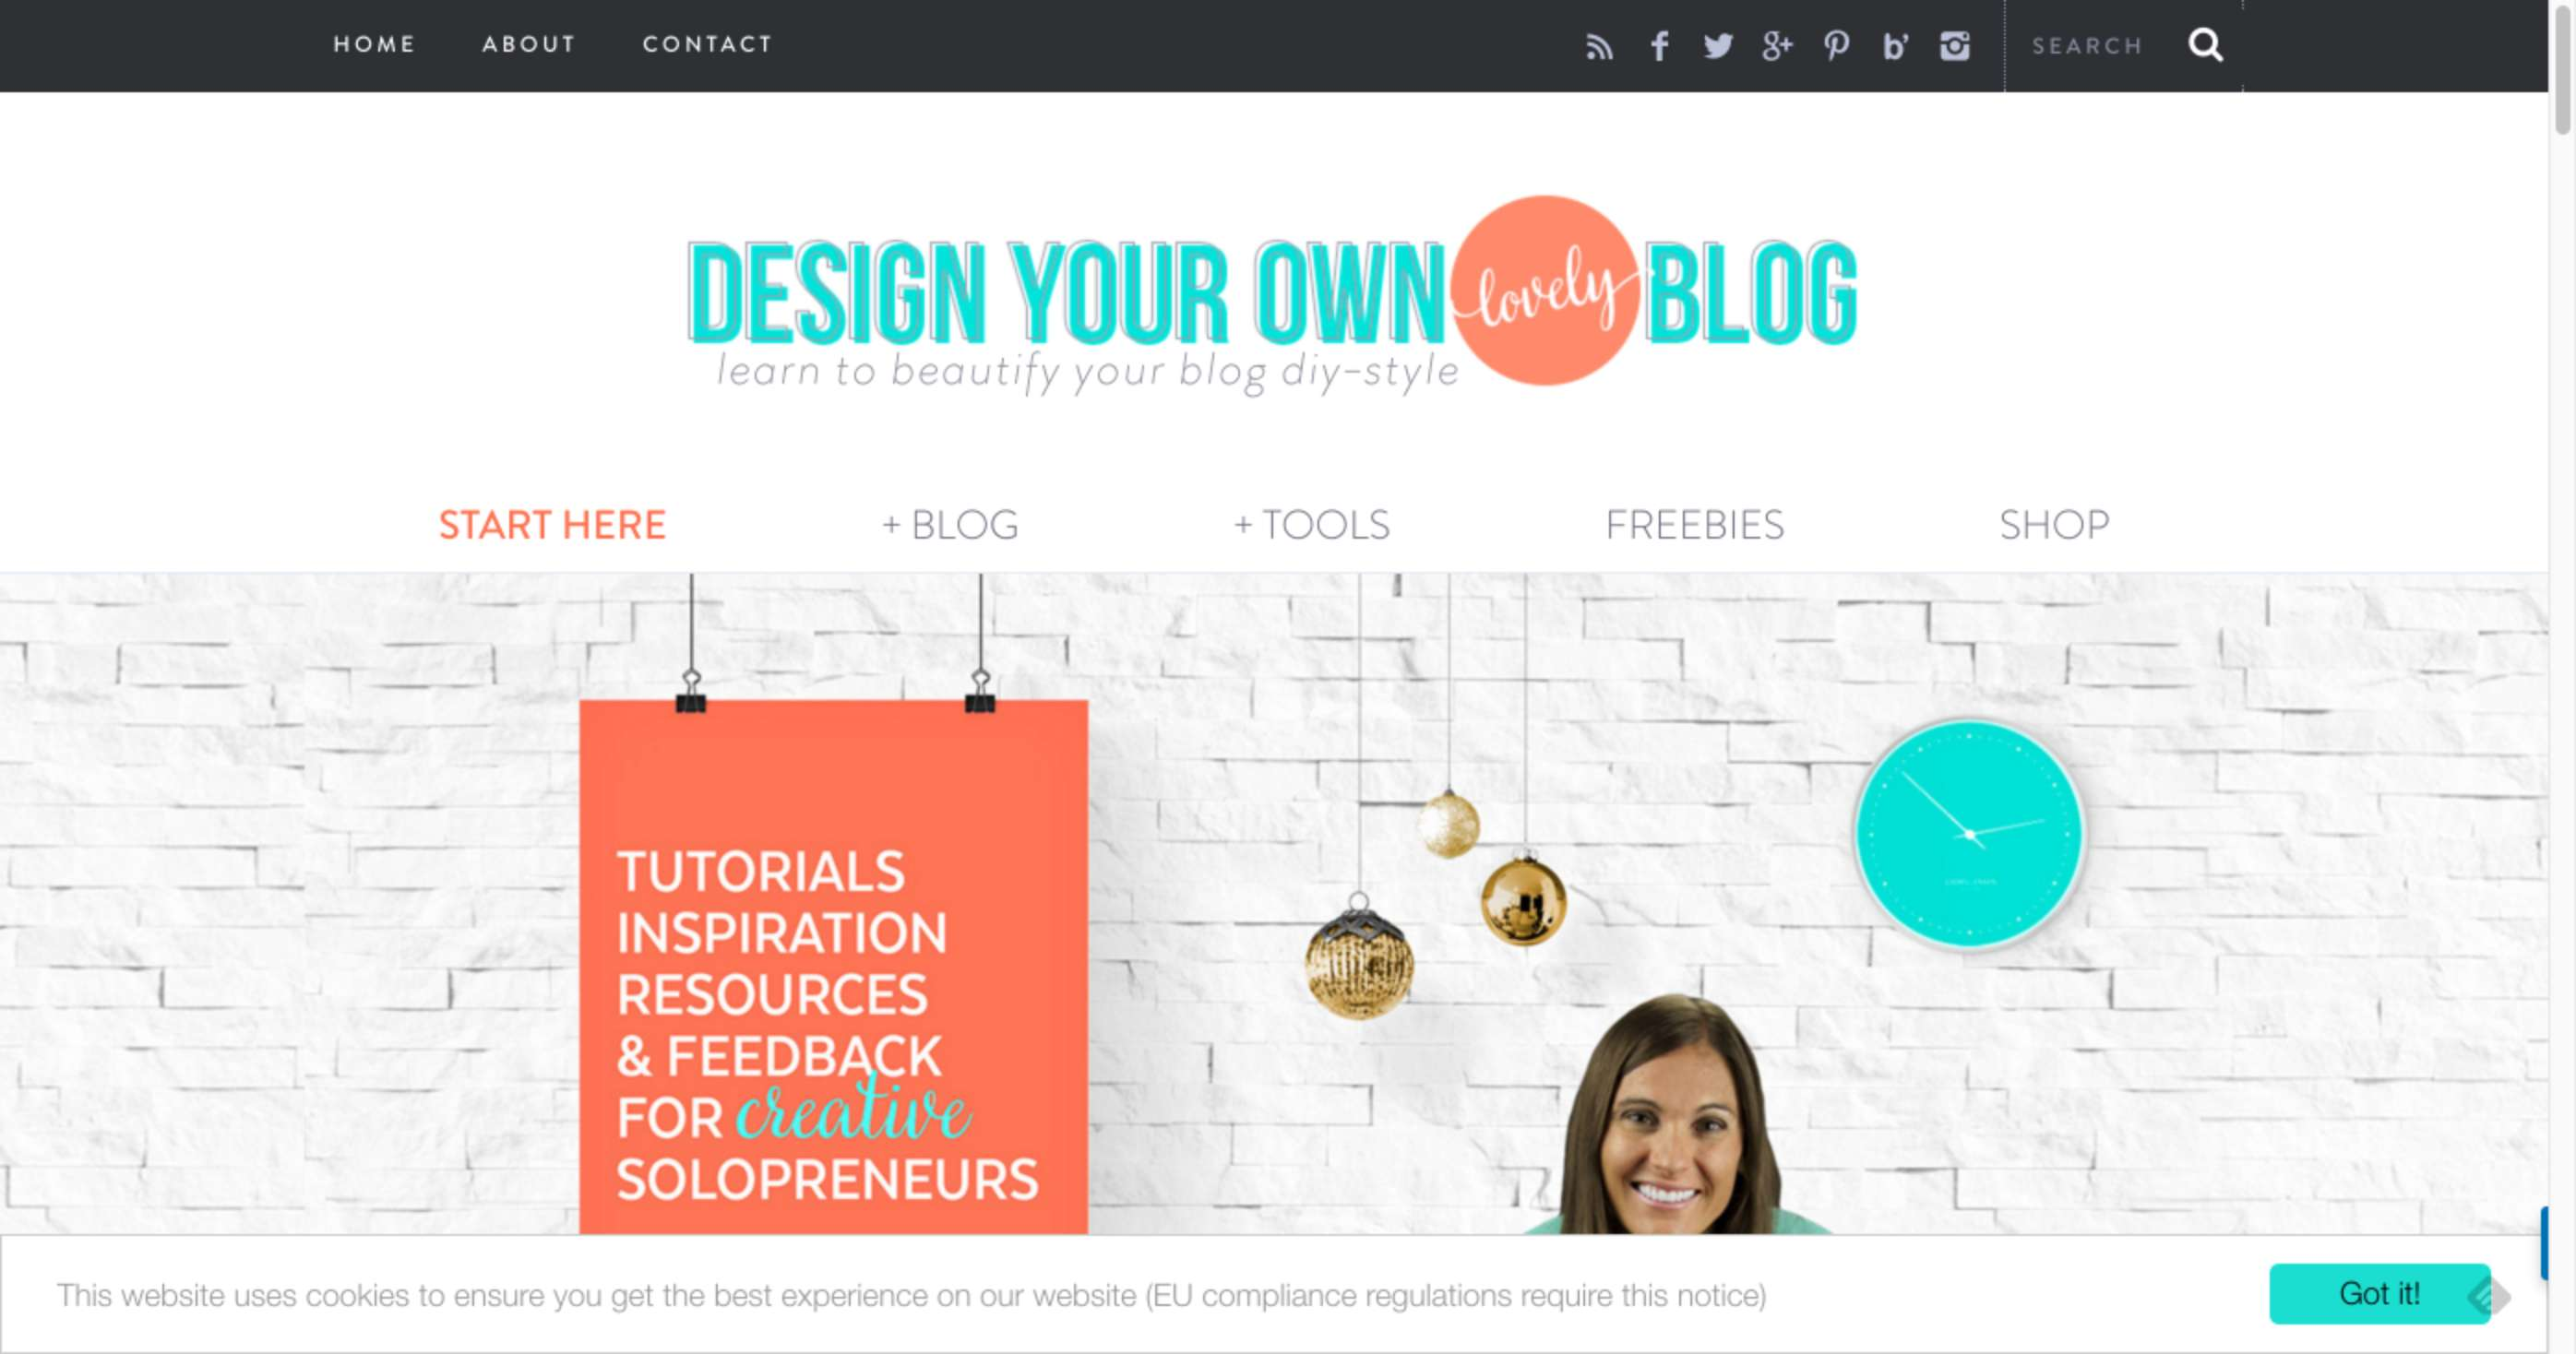 Design Blogs | 50 amazing design blogs every creative needs to bookmark